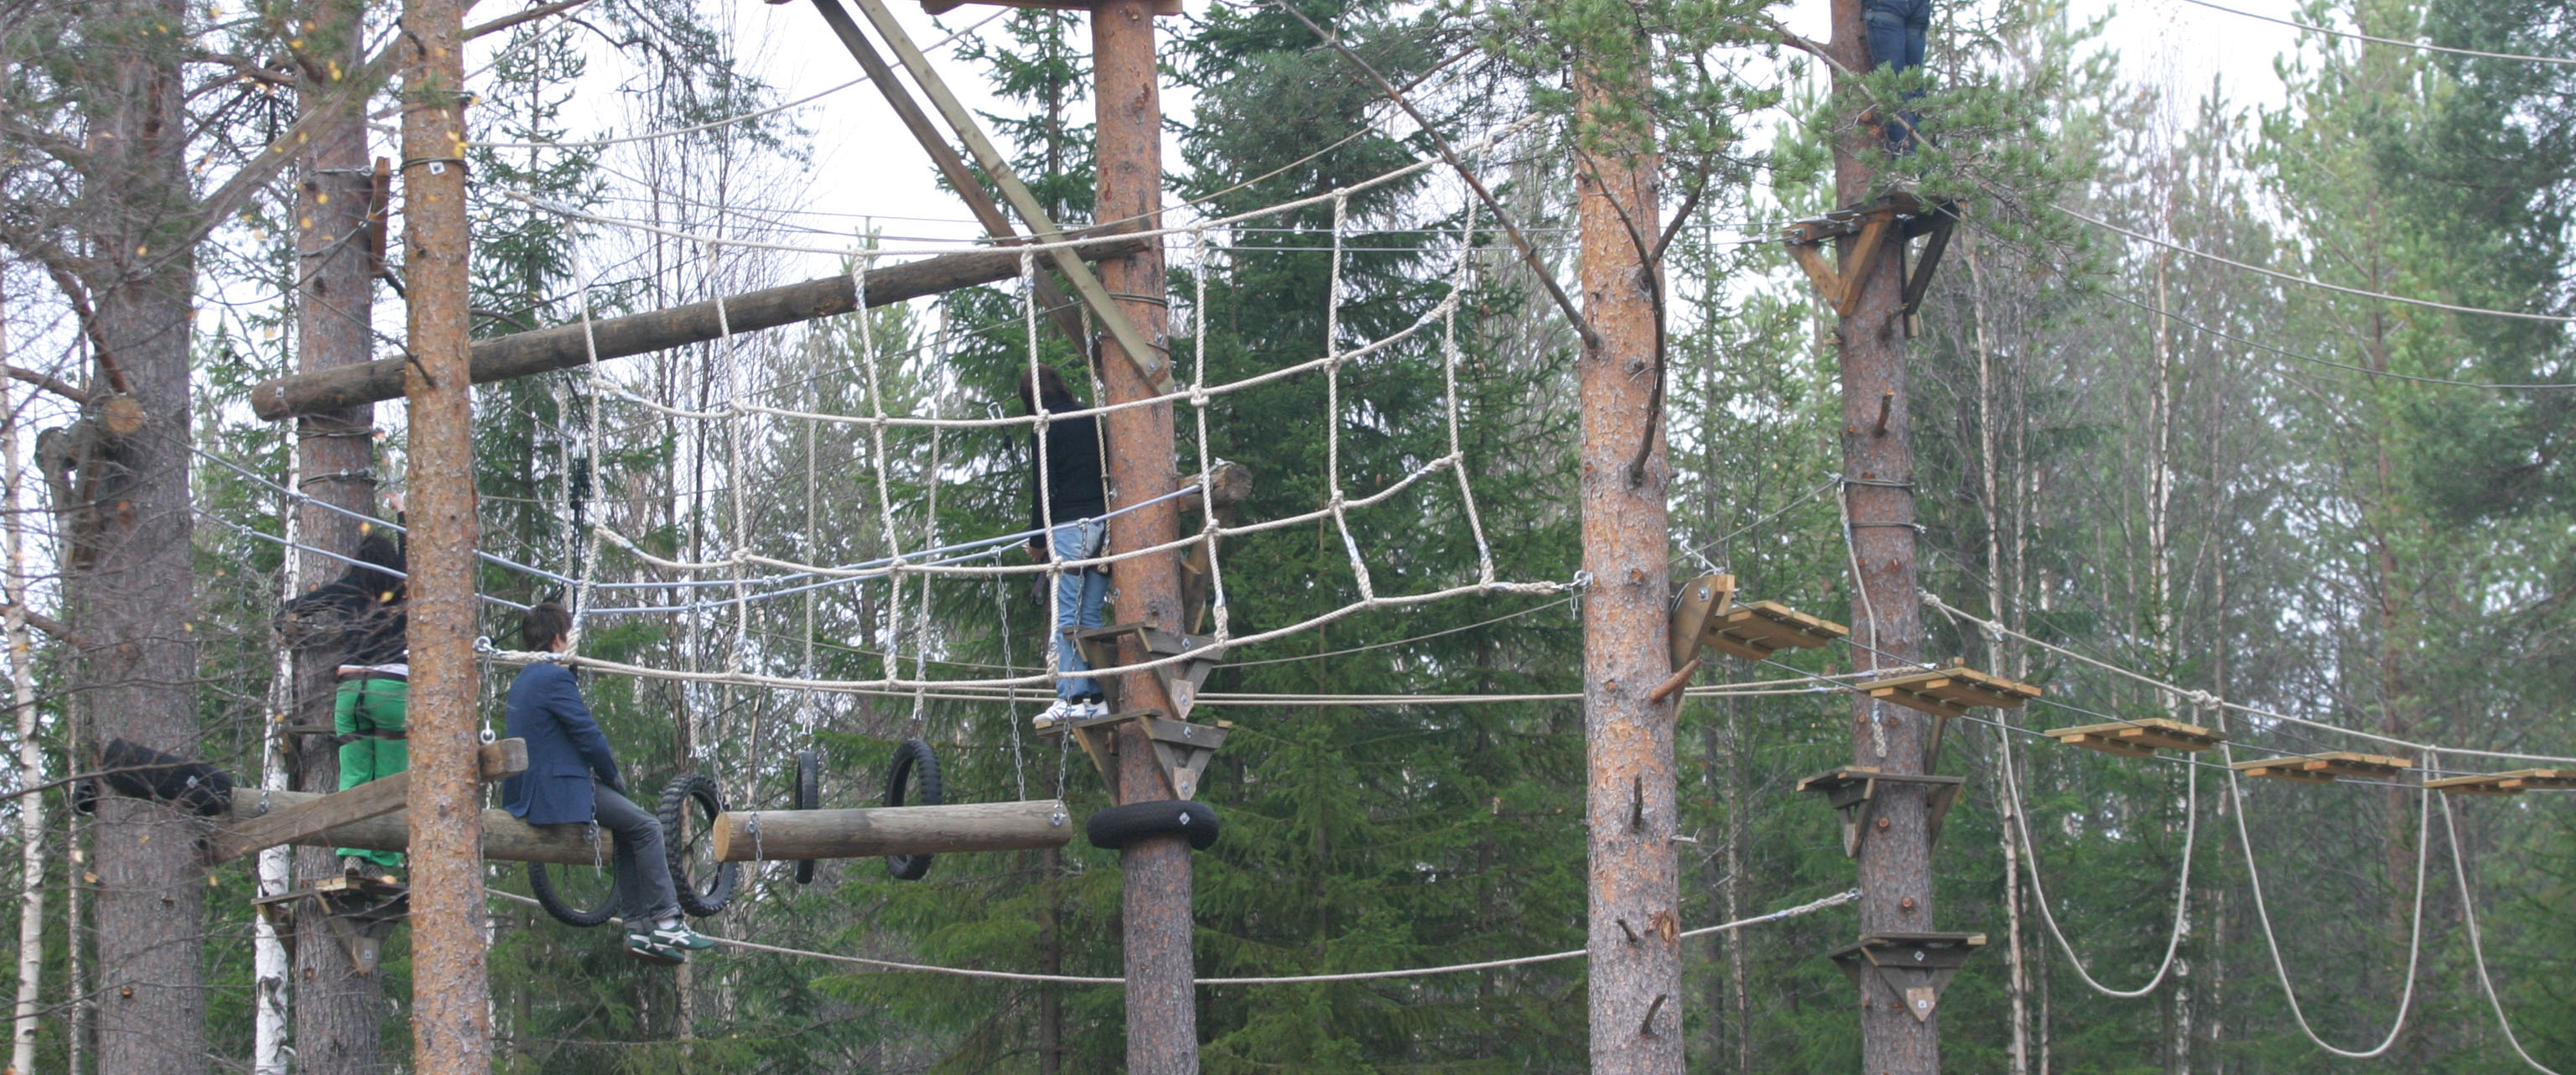 High rope course at Paintballtorpet